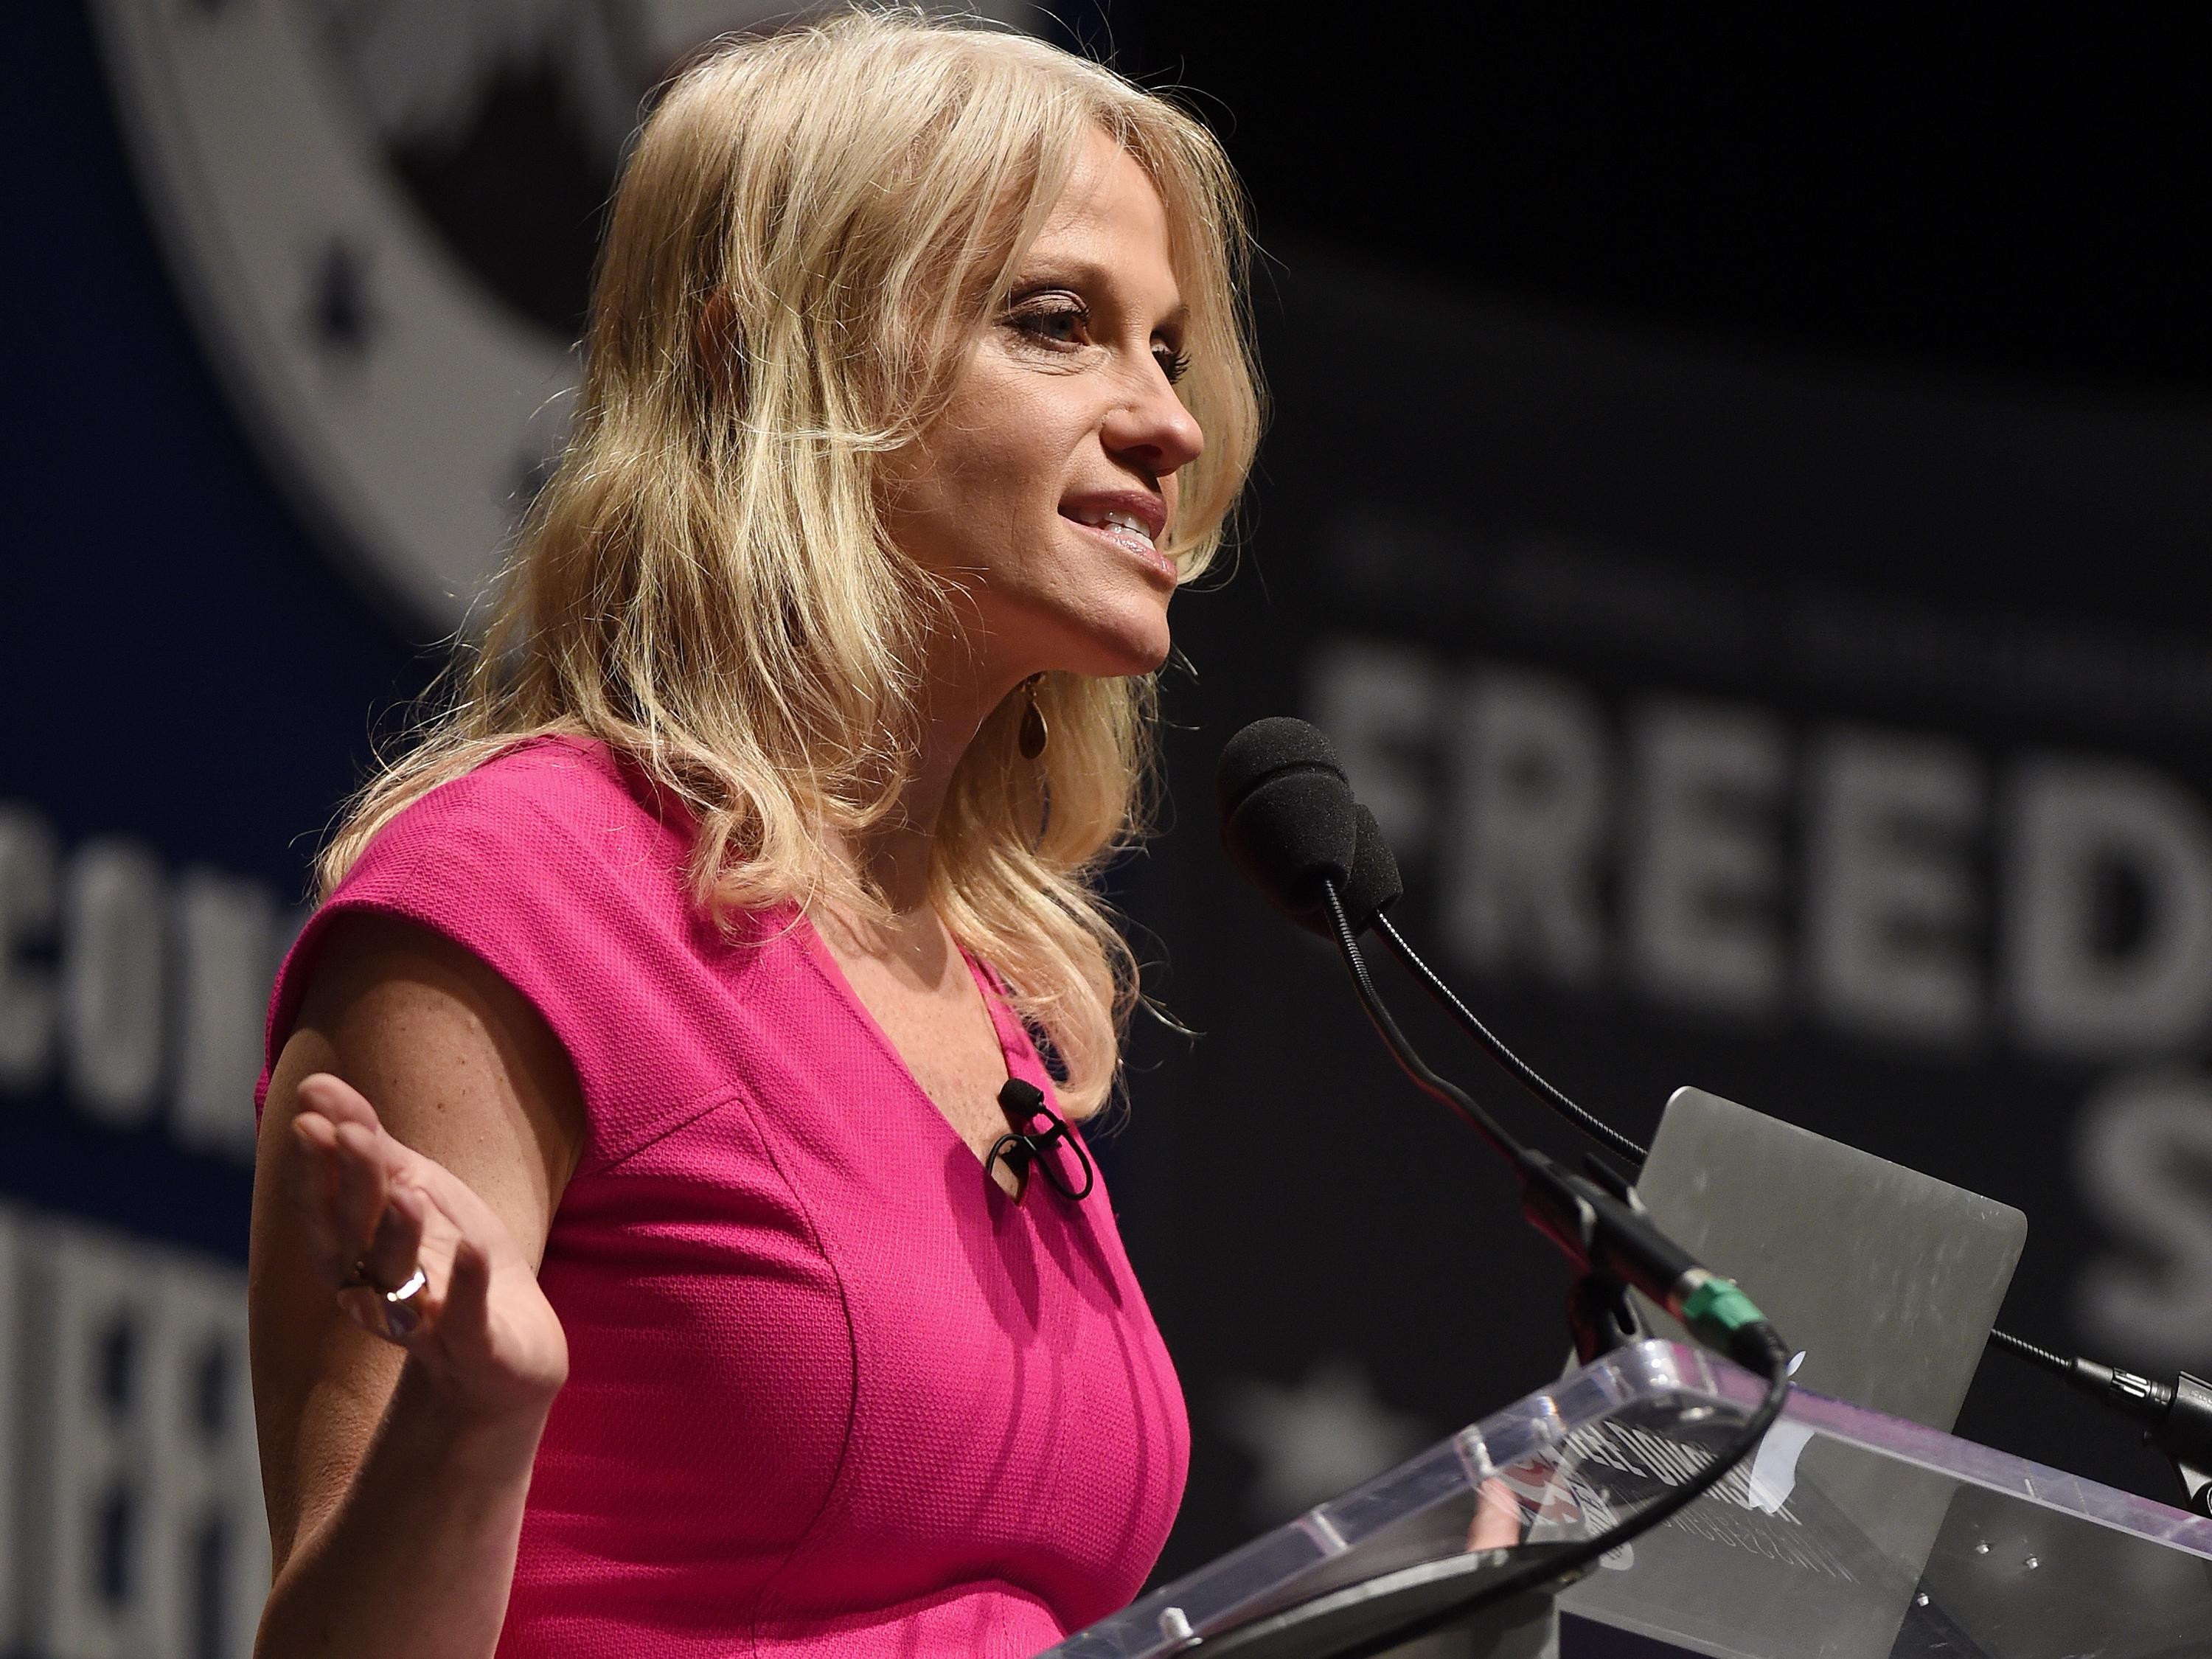 Kellyanne Conway responds to report of clash between Clinton's and Trump's campaign aides